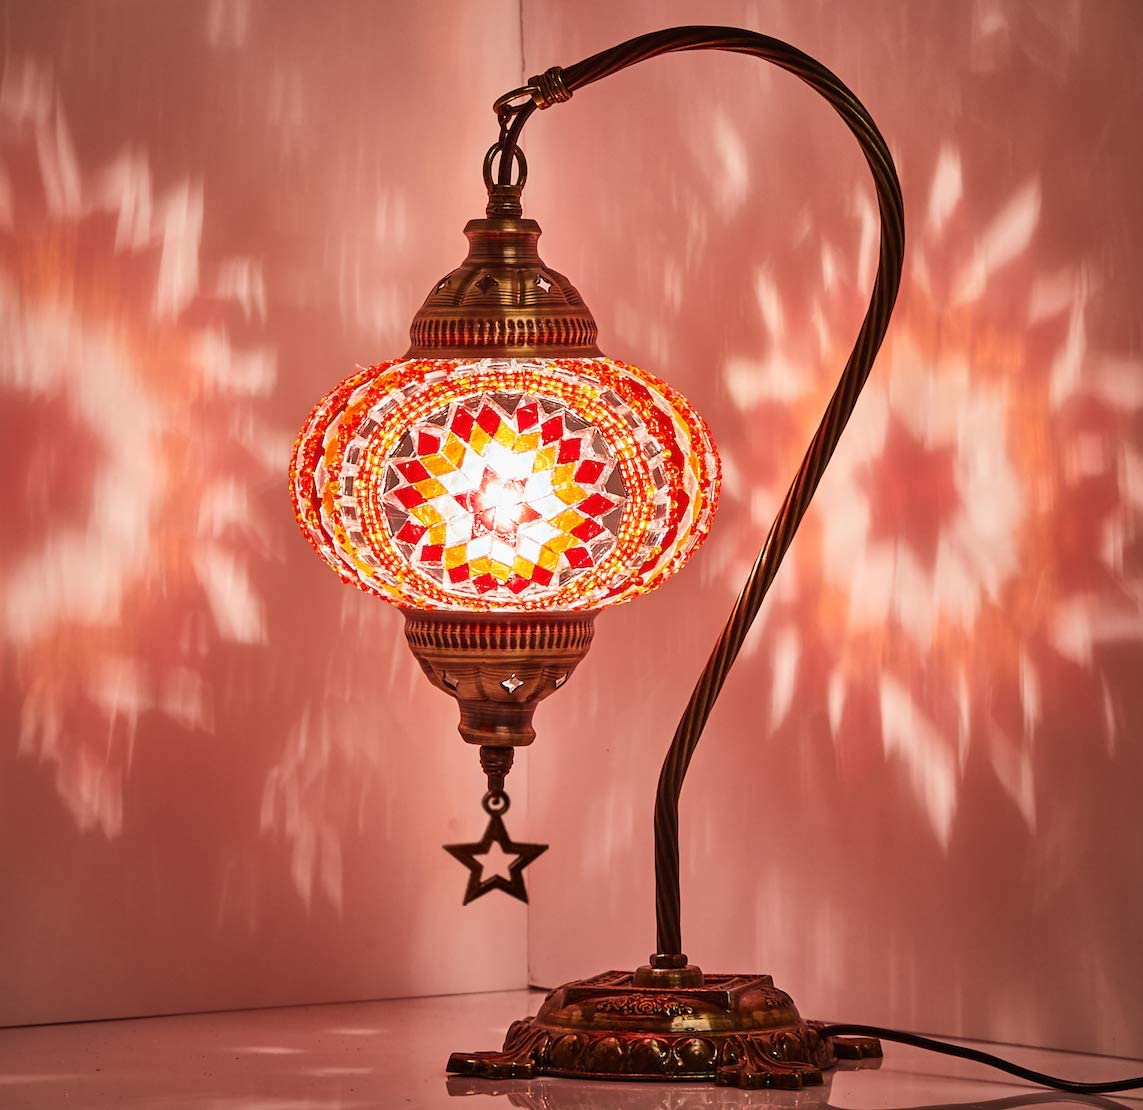 Demmex 2019 Turkish Moroccan Mosaic Table Bedside Night Tiffany Bedside Lamp for US Use, Red